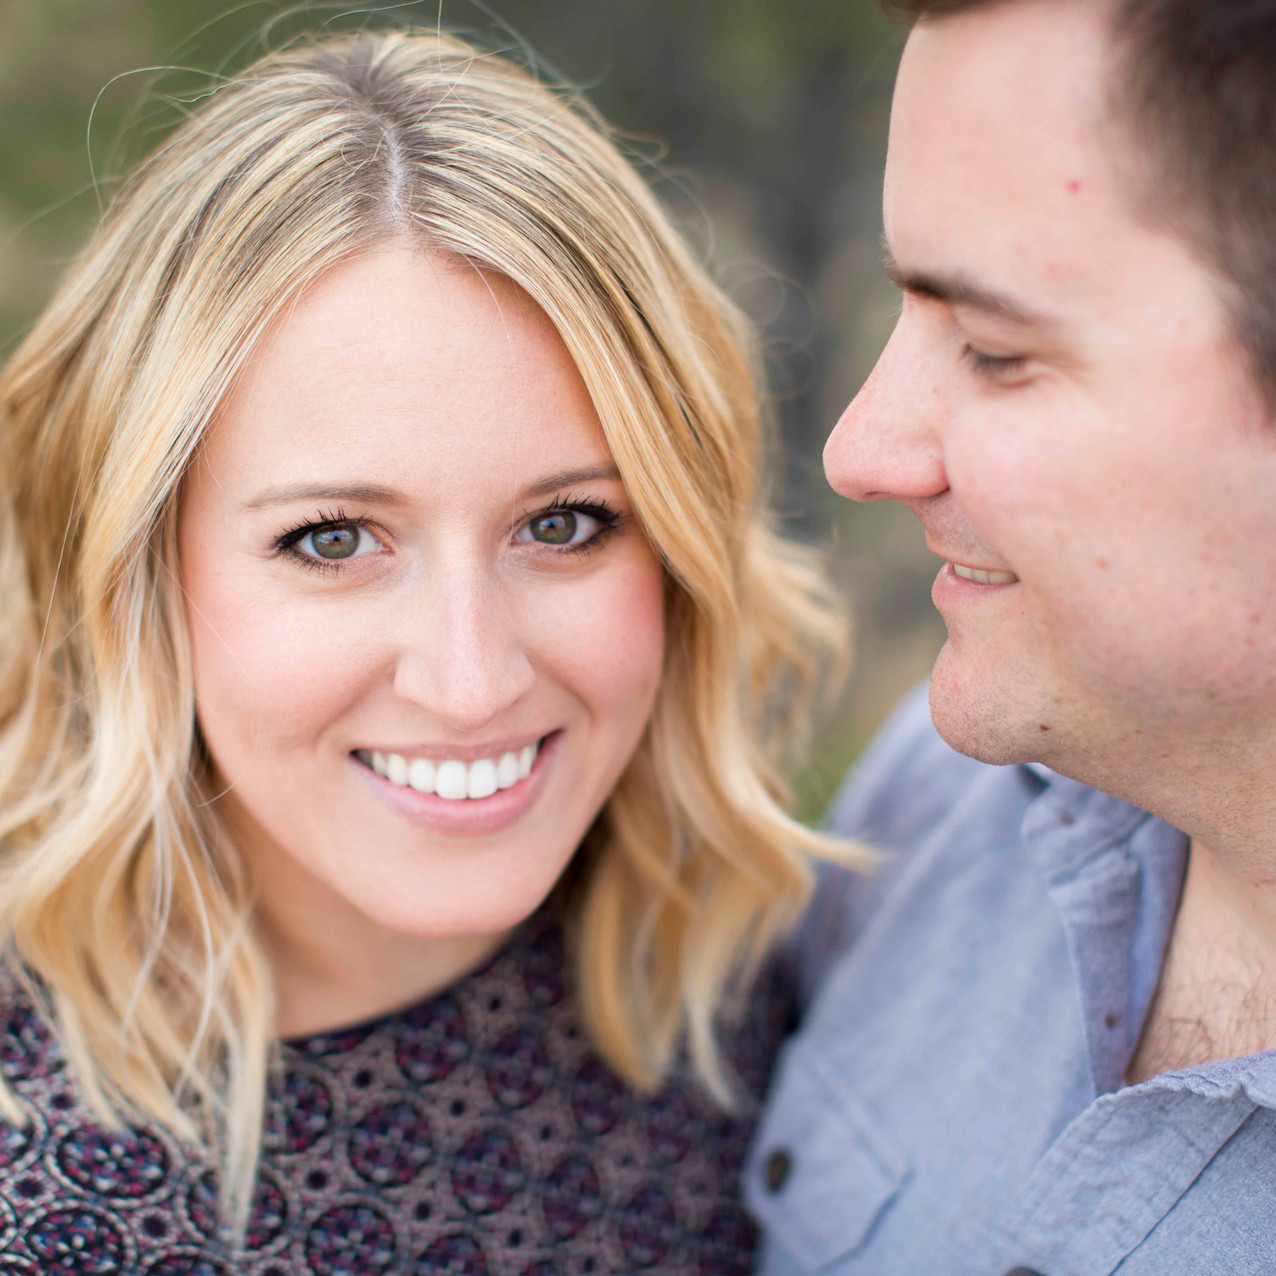 colorado-springs-engagement-photographer-_55